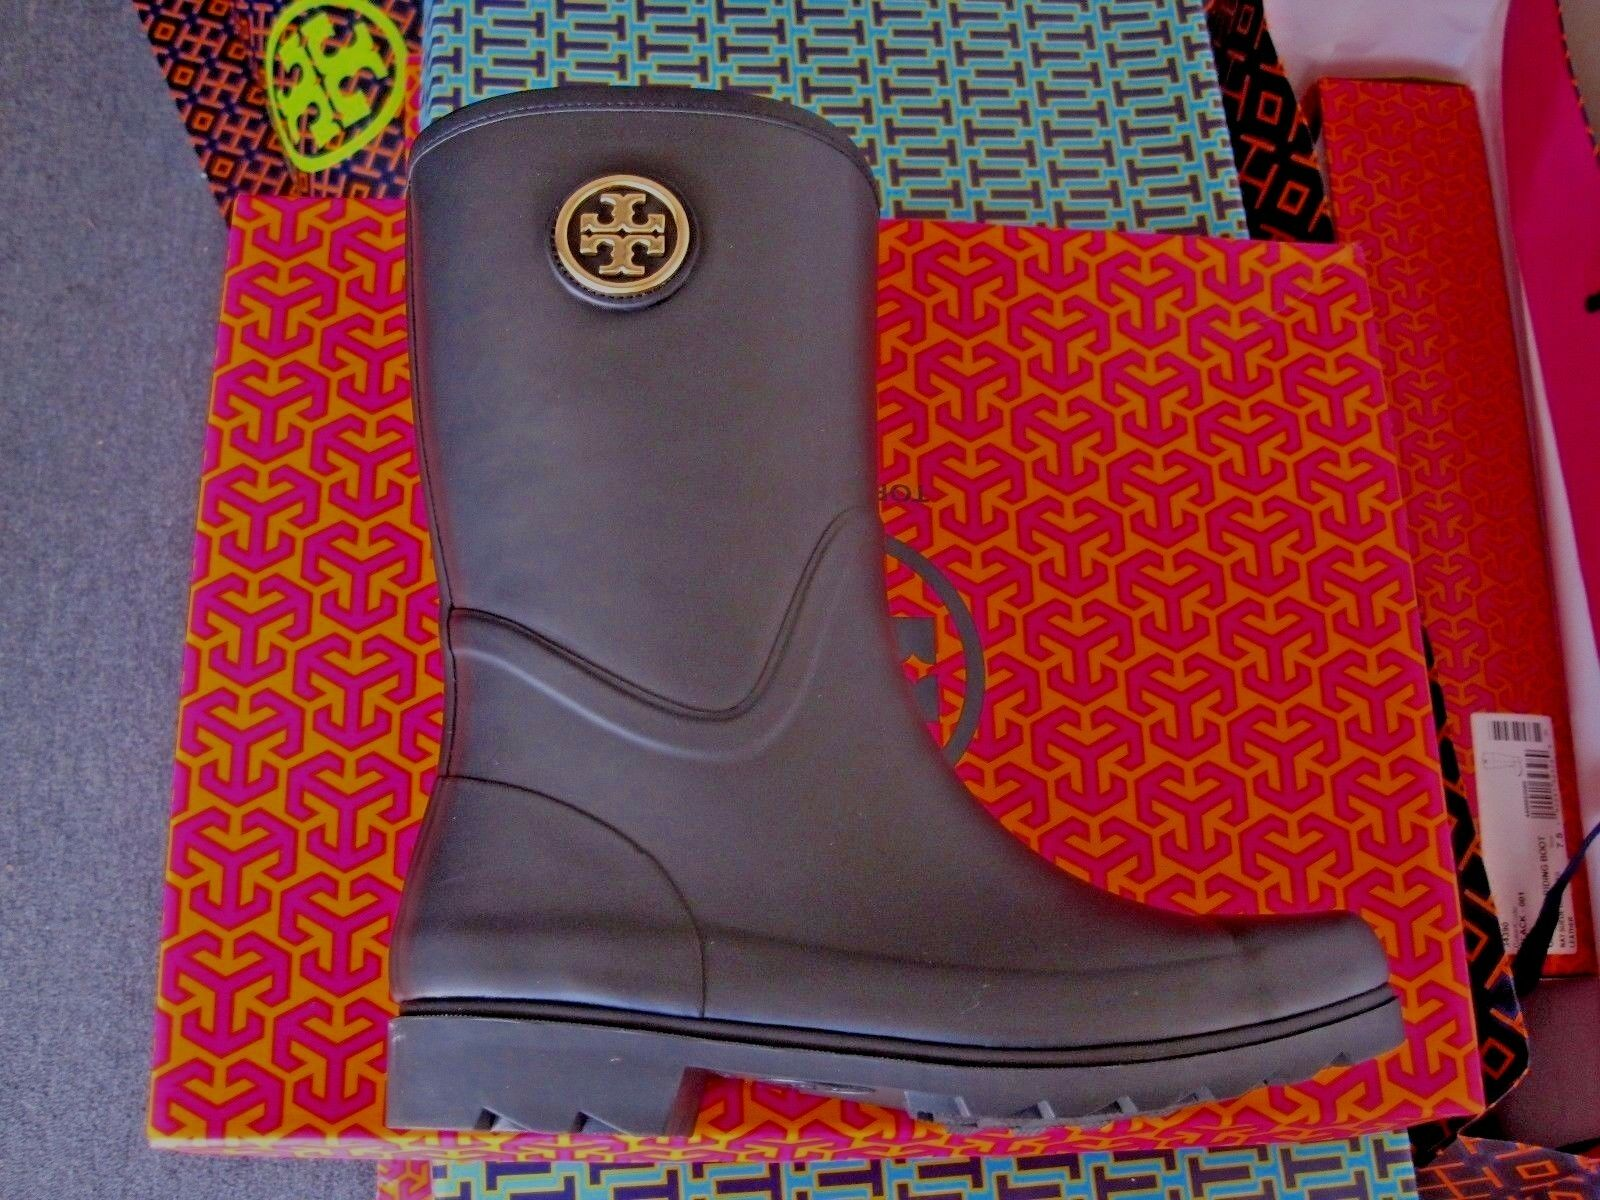 TORY BURCH MAUREEN RAIN BOOT NAVY  NEW BRAND NEW  IN THE BOX SIZE 10 52b8a5